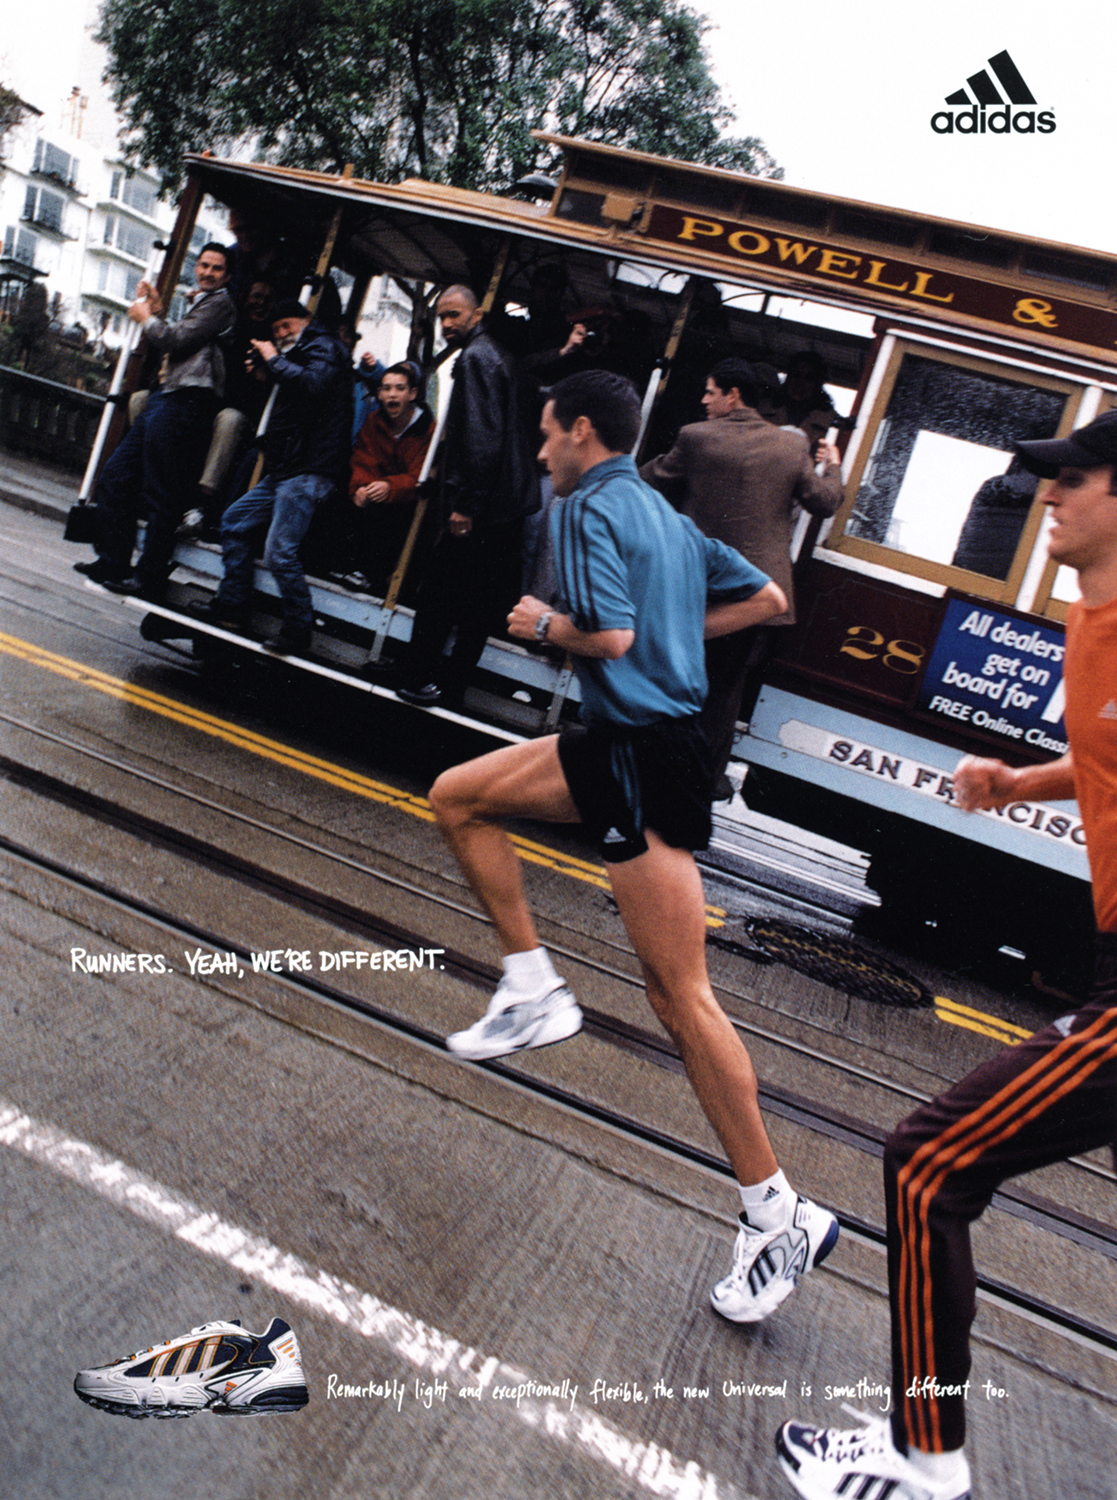 """adidas""""Runner's, yeah we're different"""" Campaign  Leagas Delaney, San Francisco 1999"""